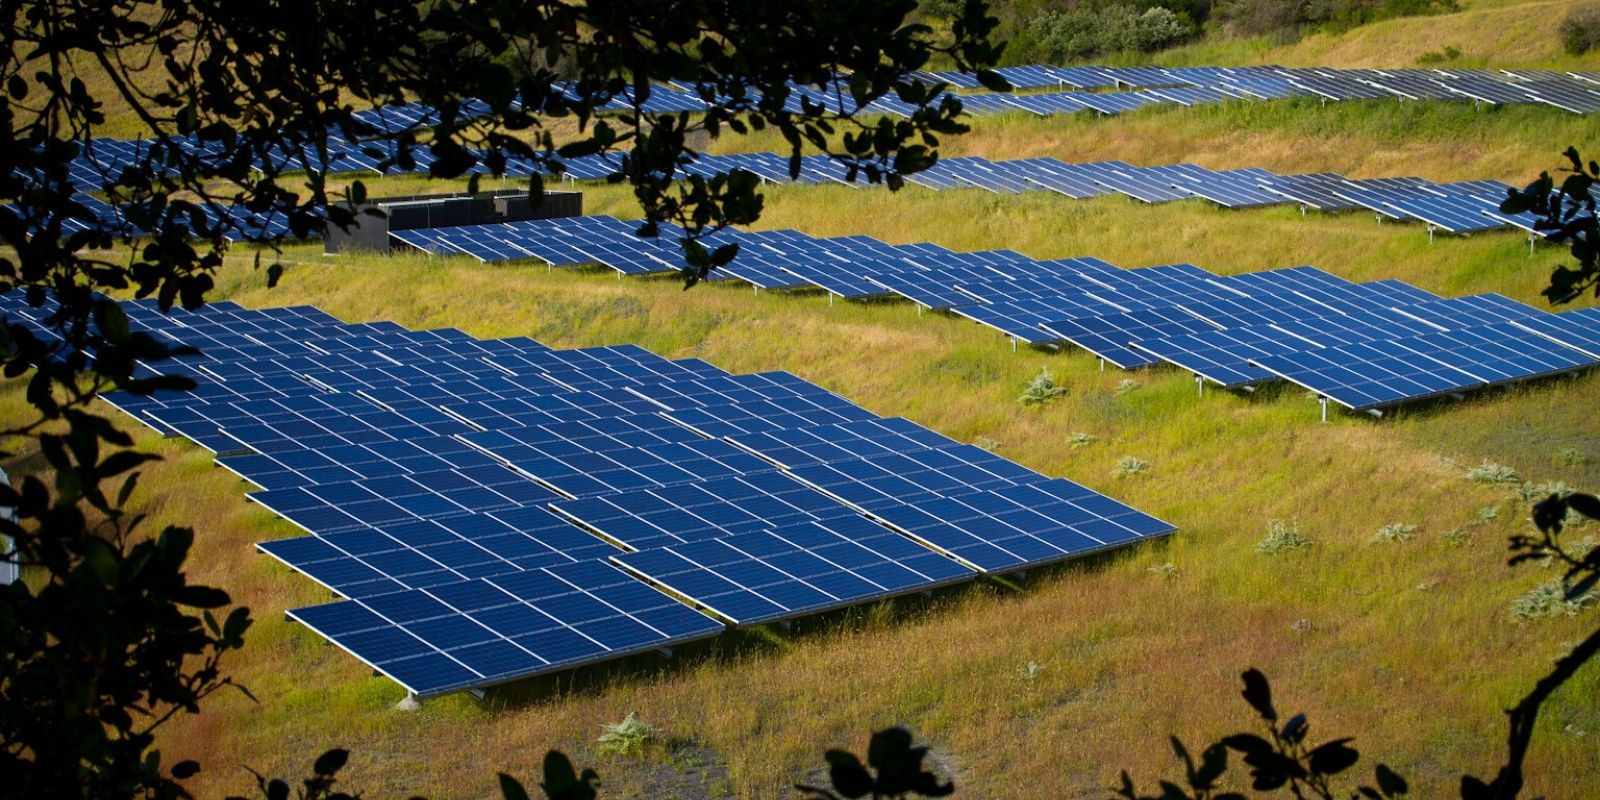 Canada's largest solar farm will be in southern Alberta